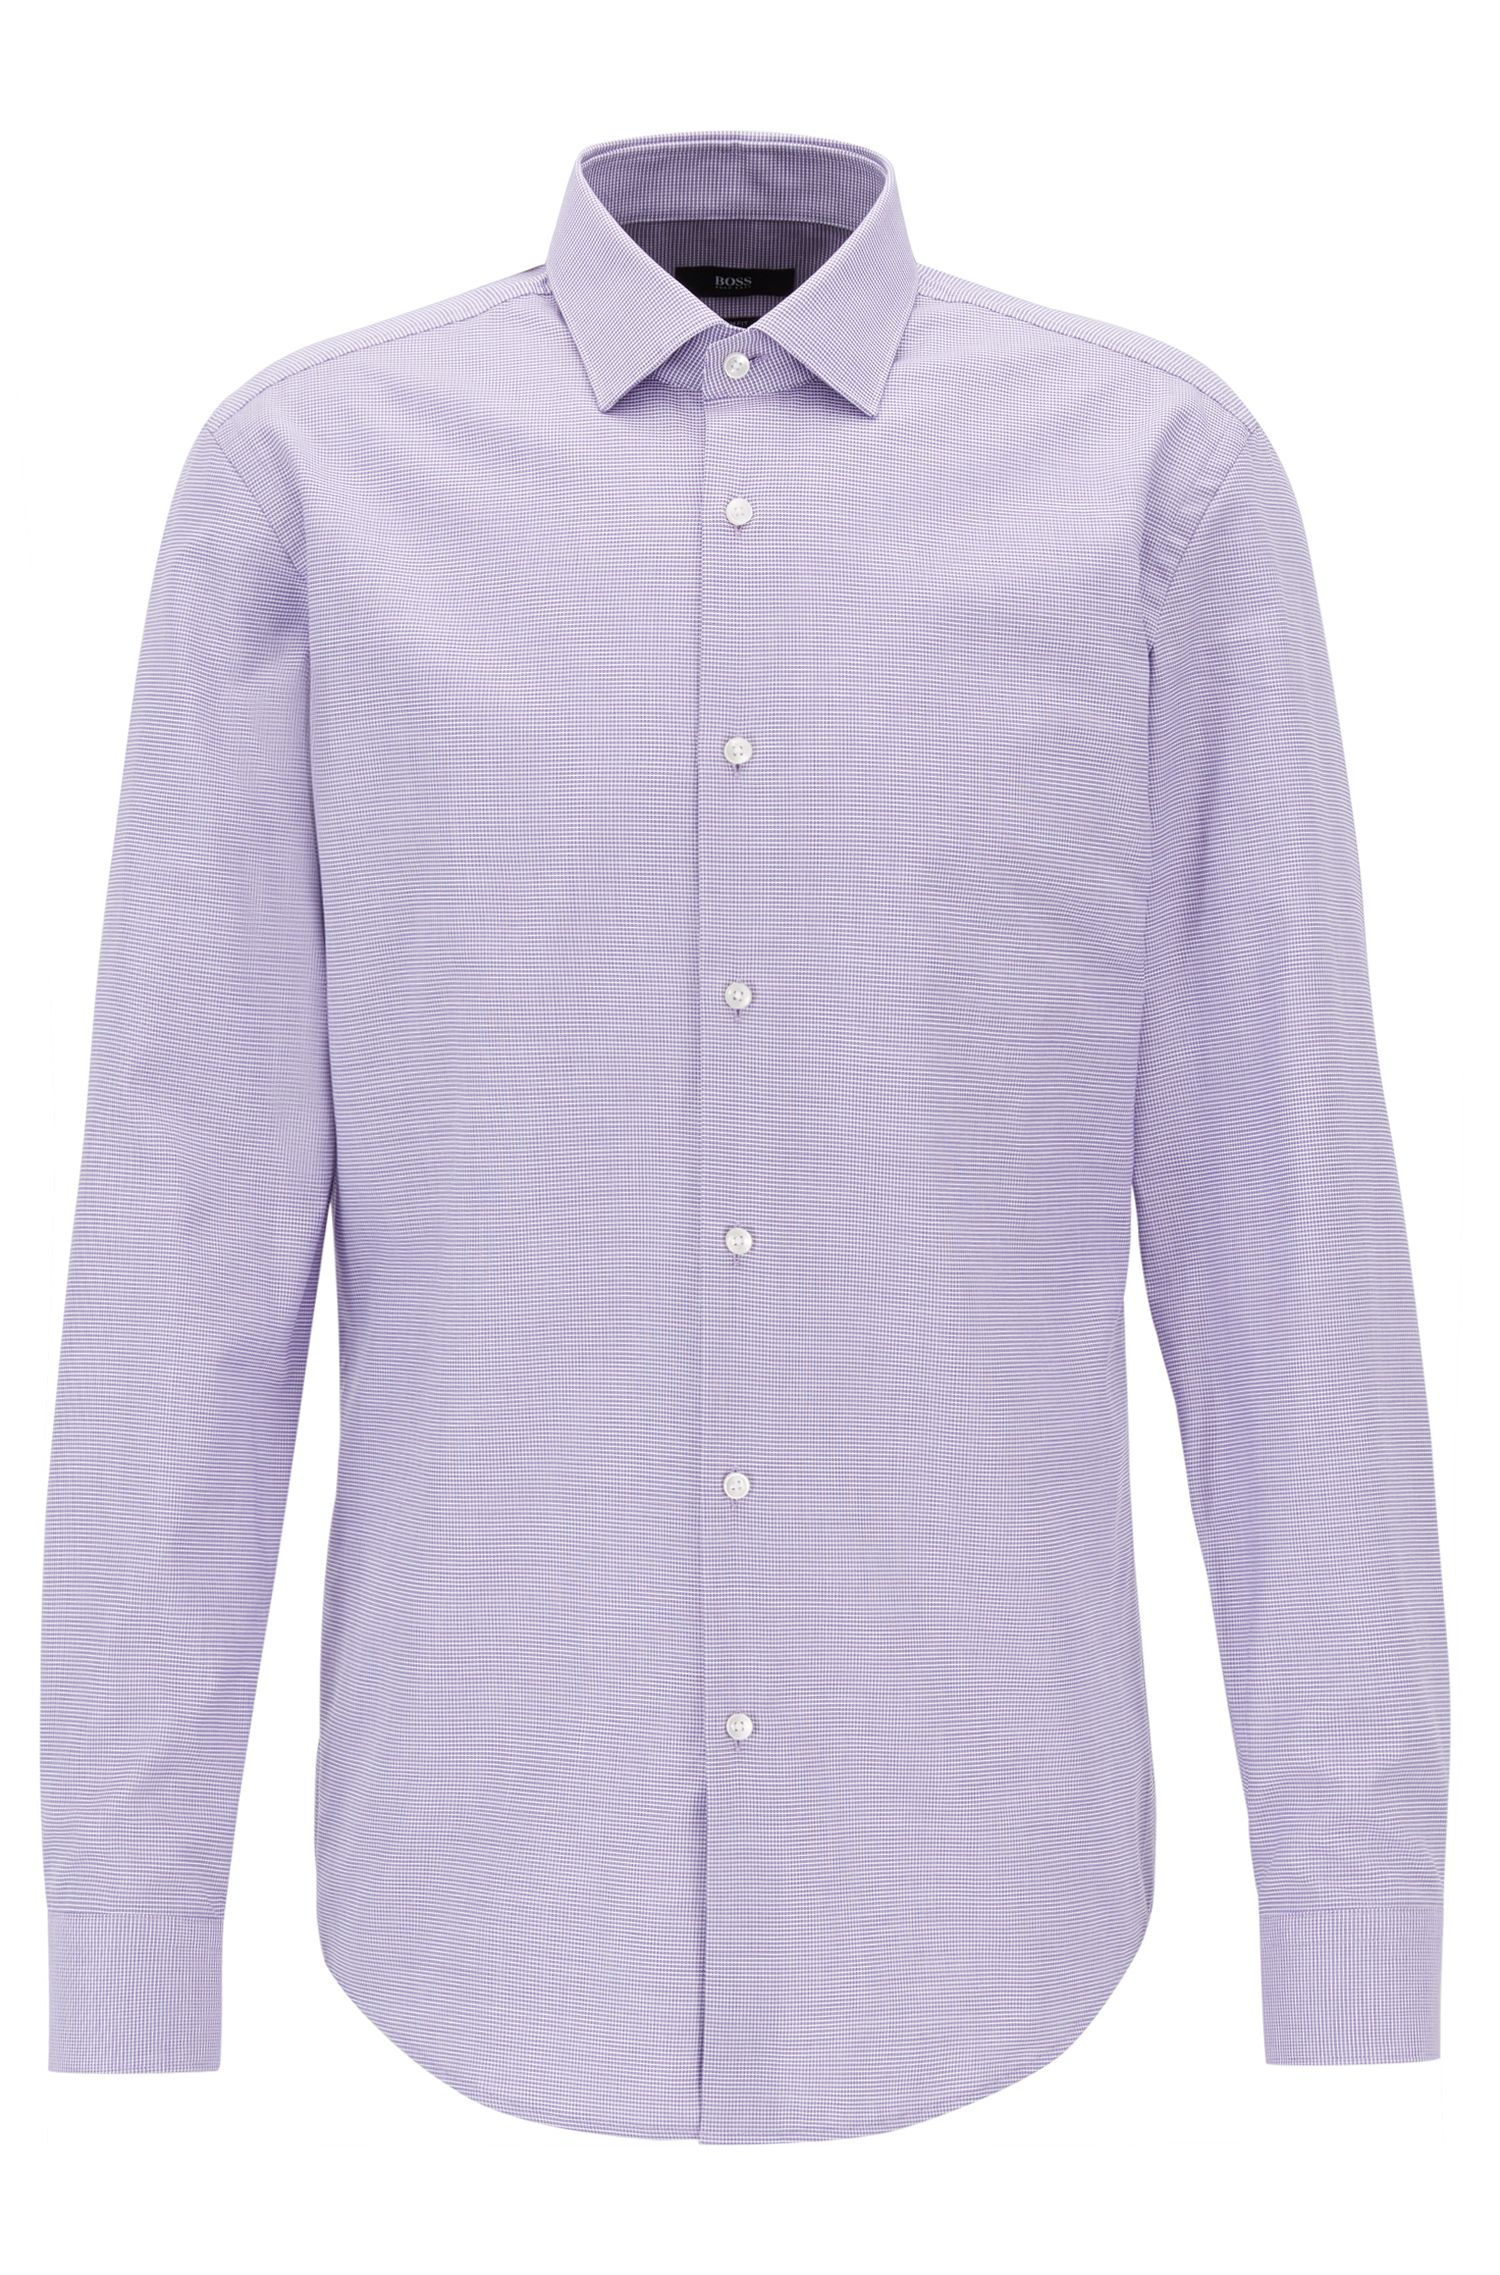 Slim-fit cotton shirt with all-over micro structure